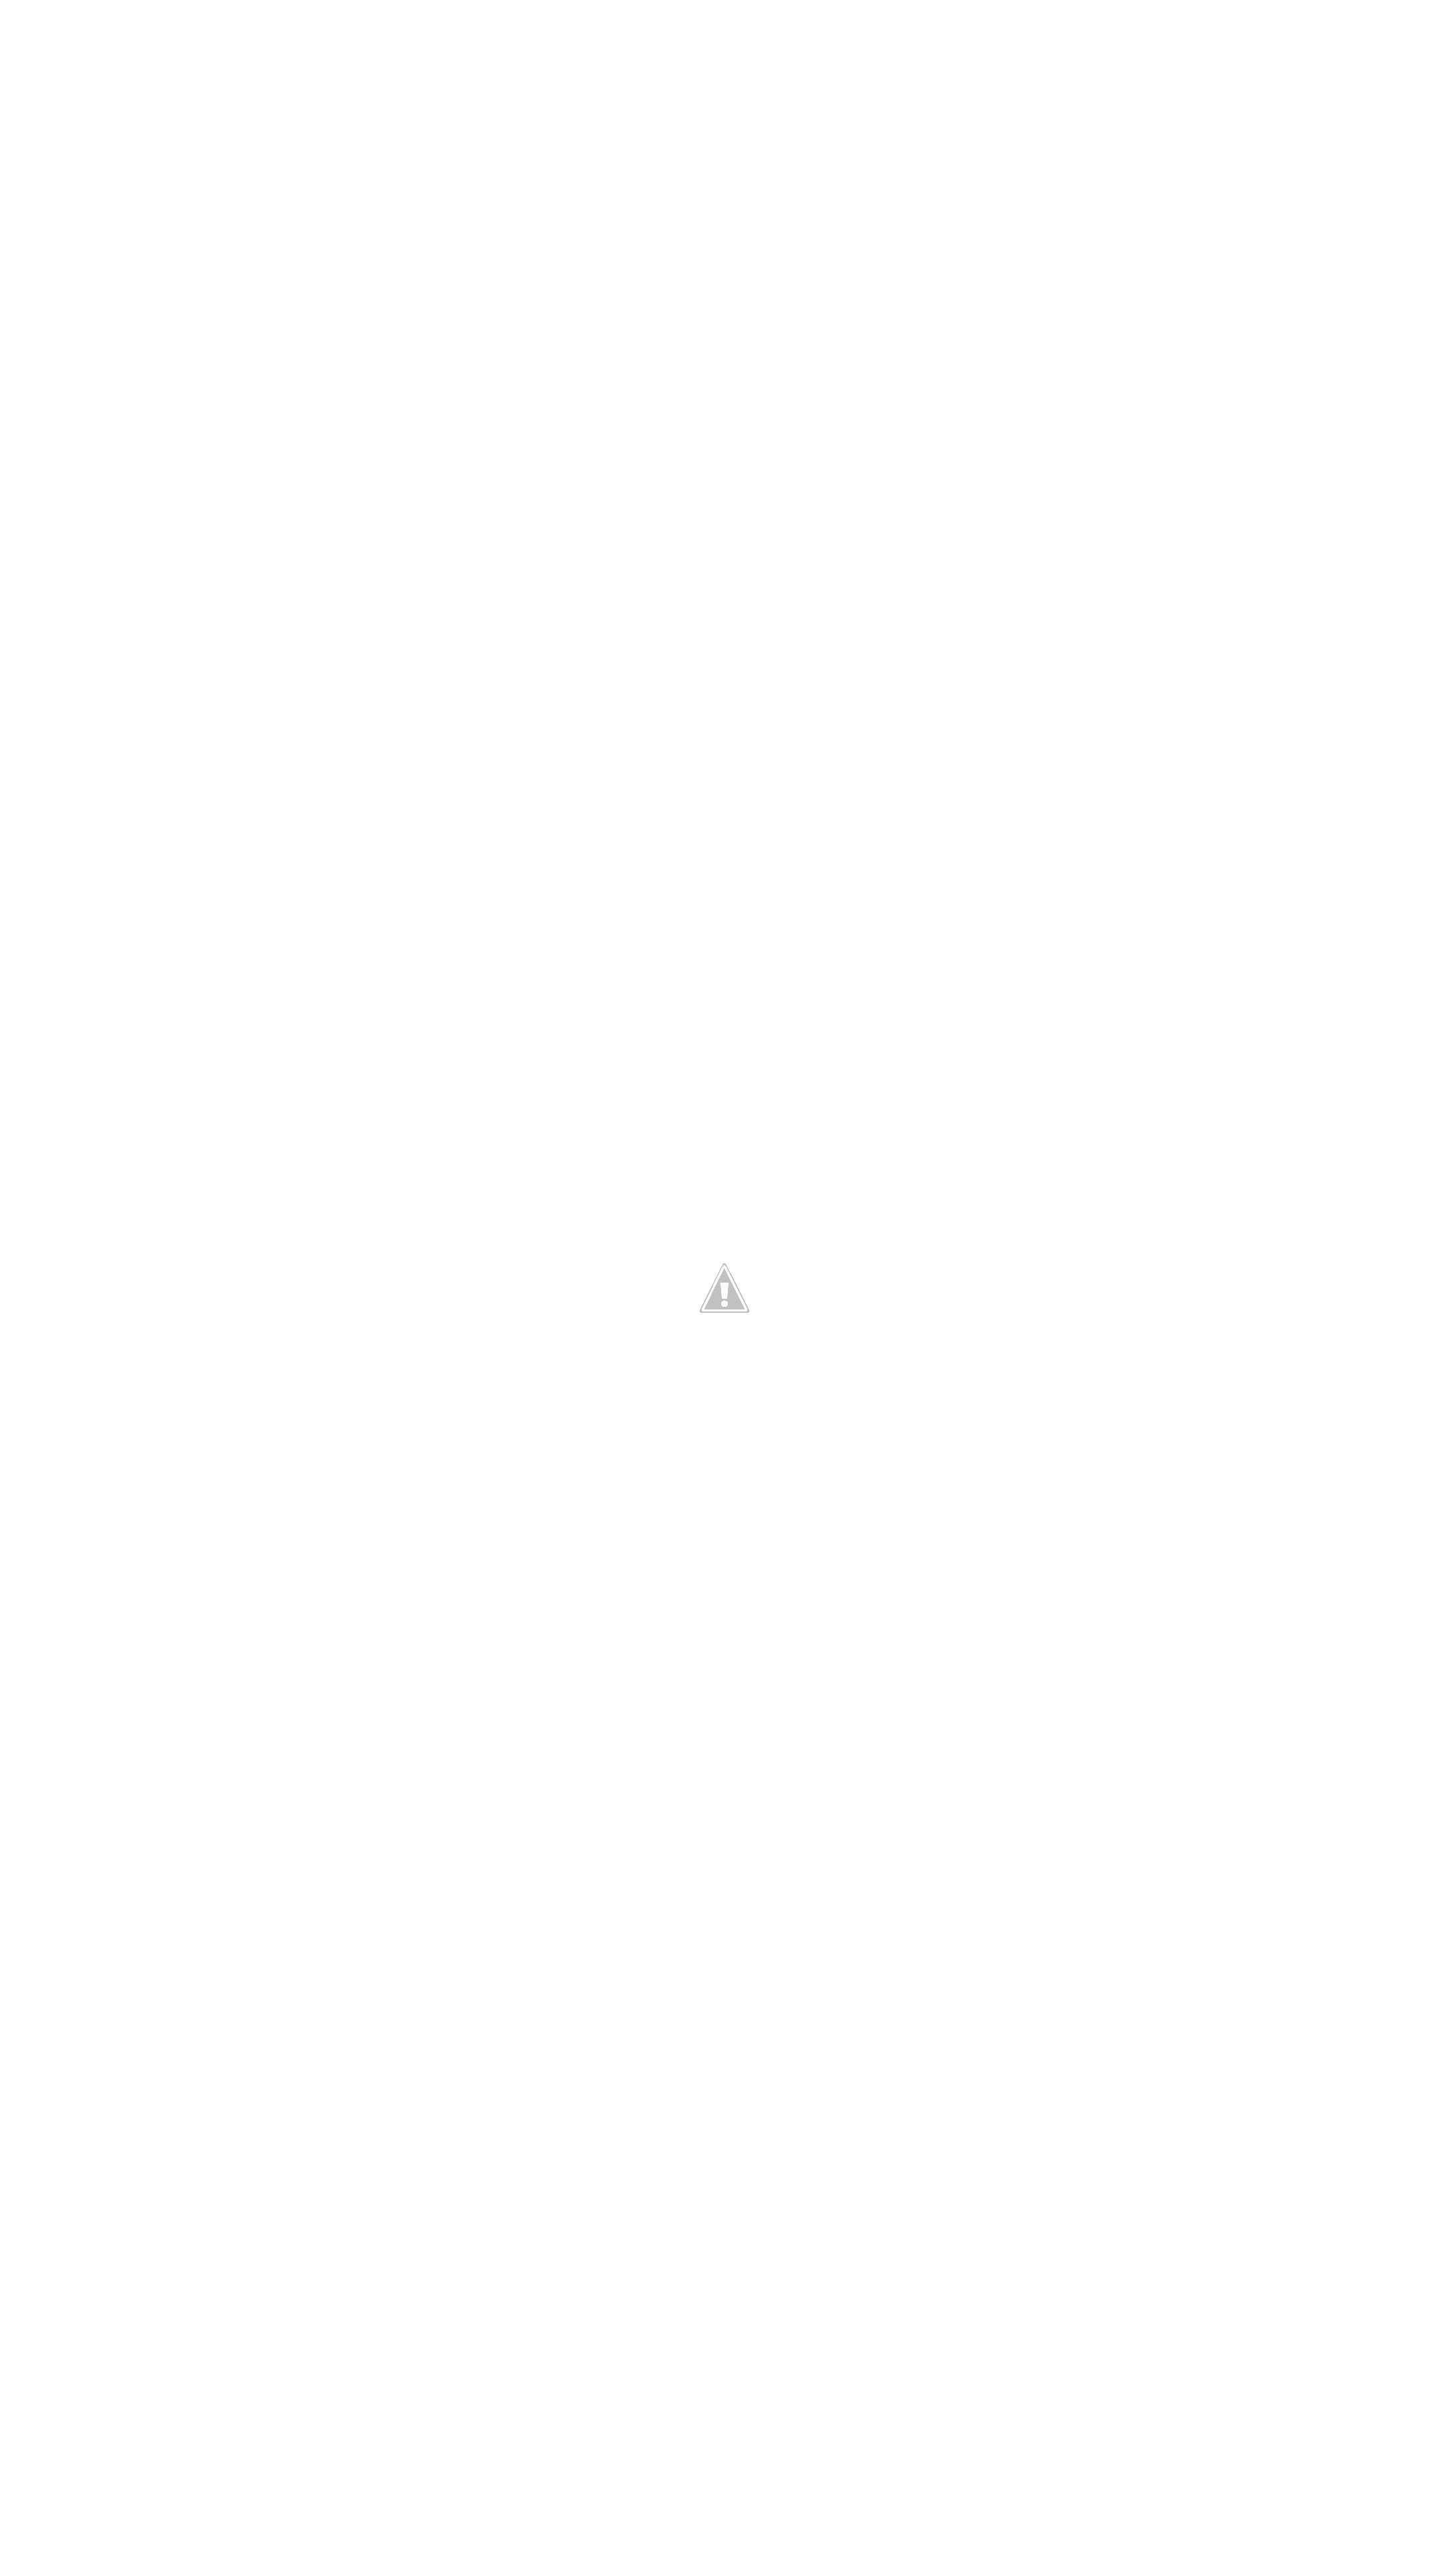 Mamas And Papas Dropside Cot Instructions Youre Welcome